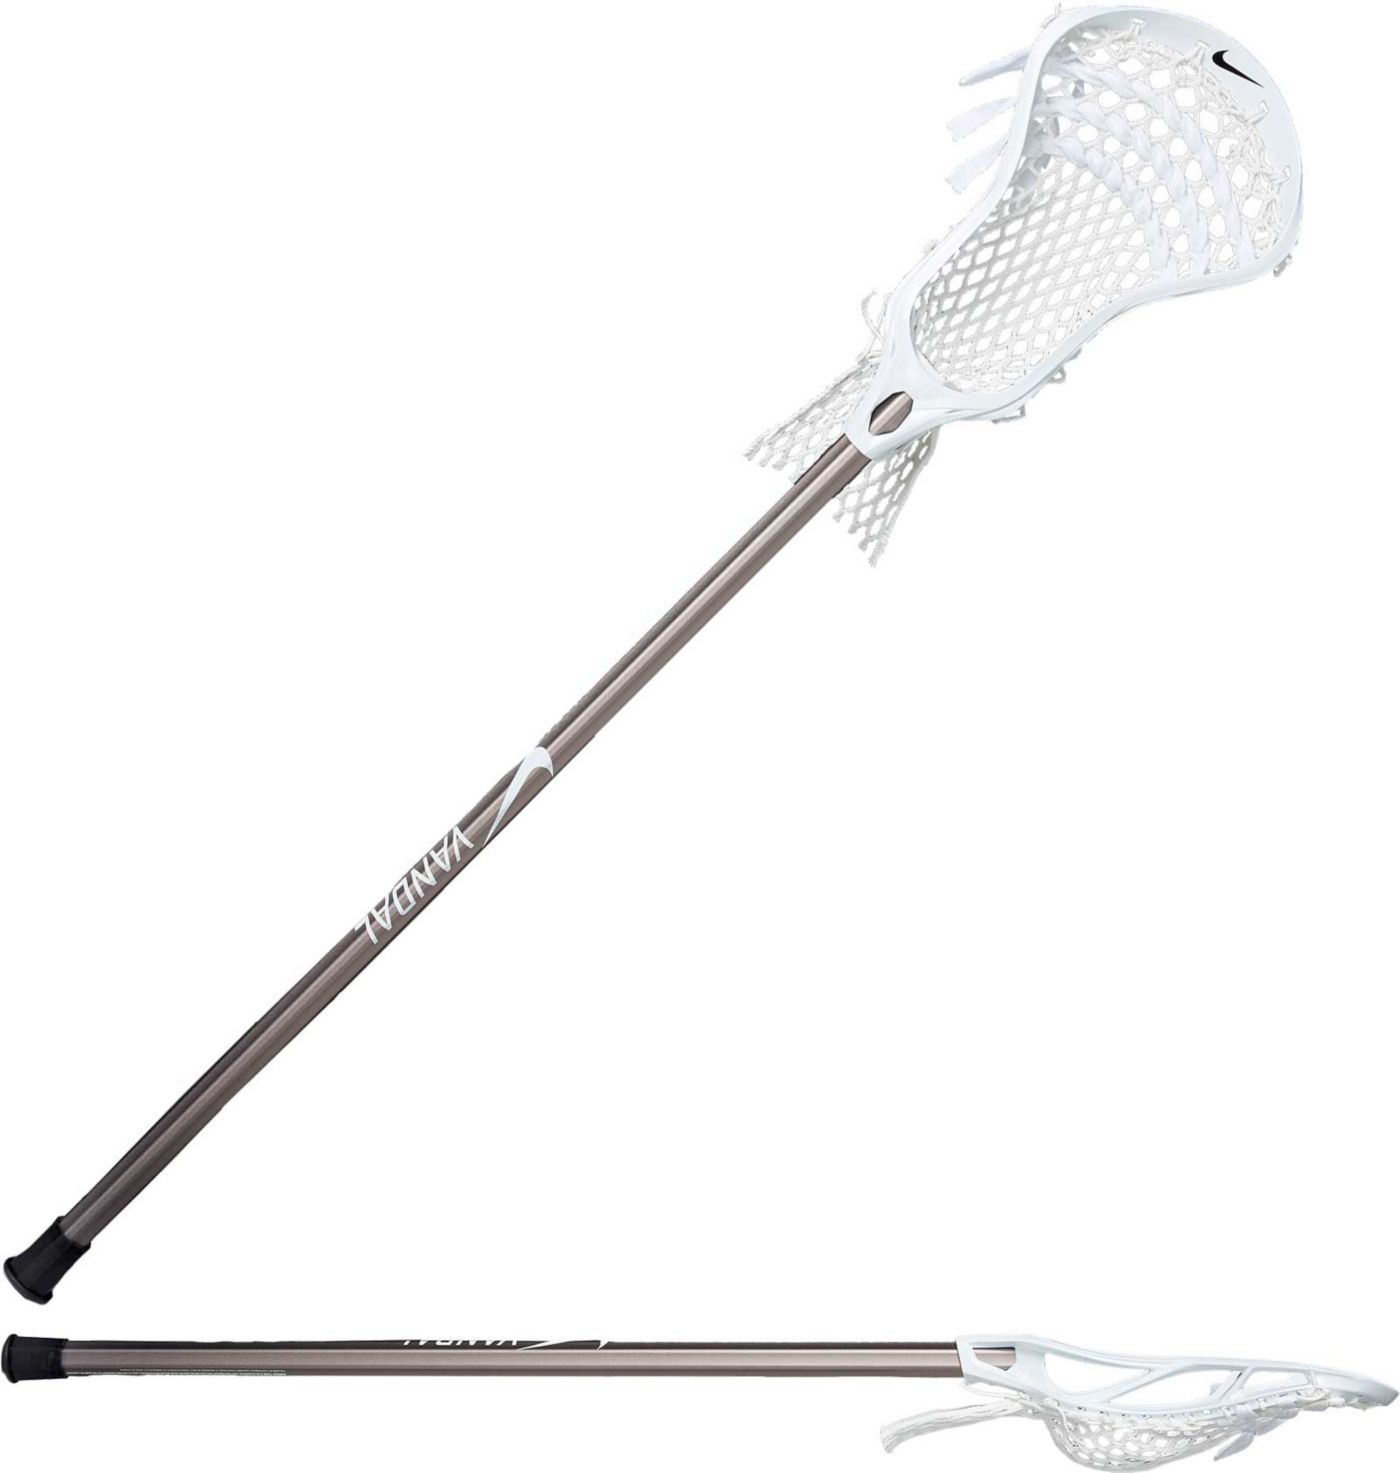 Nike Men's Vapor 2.0 on Vandal Complete Attack Lacrosse Stick